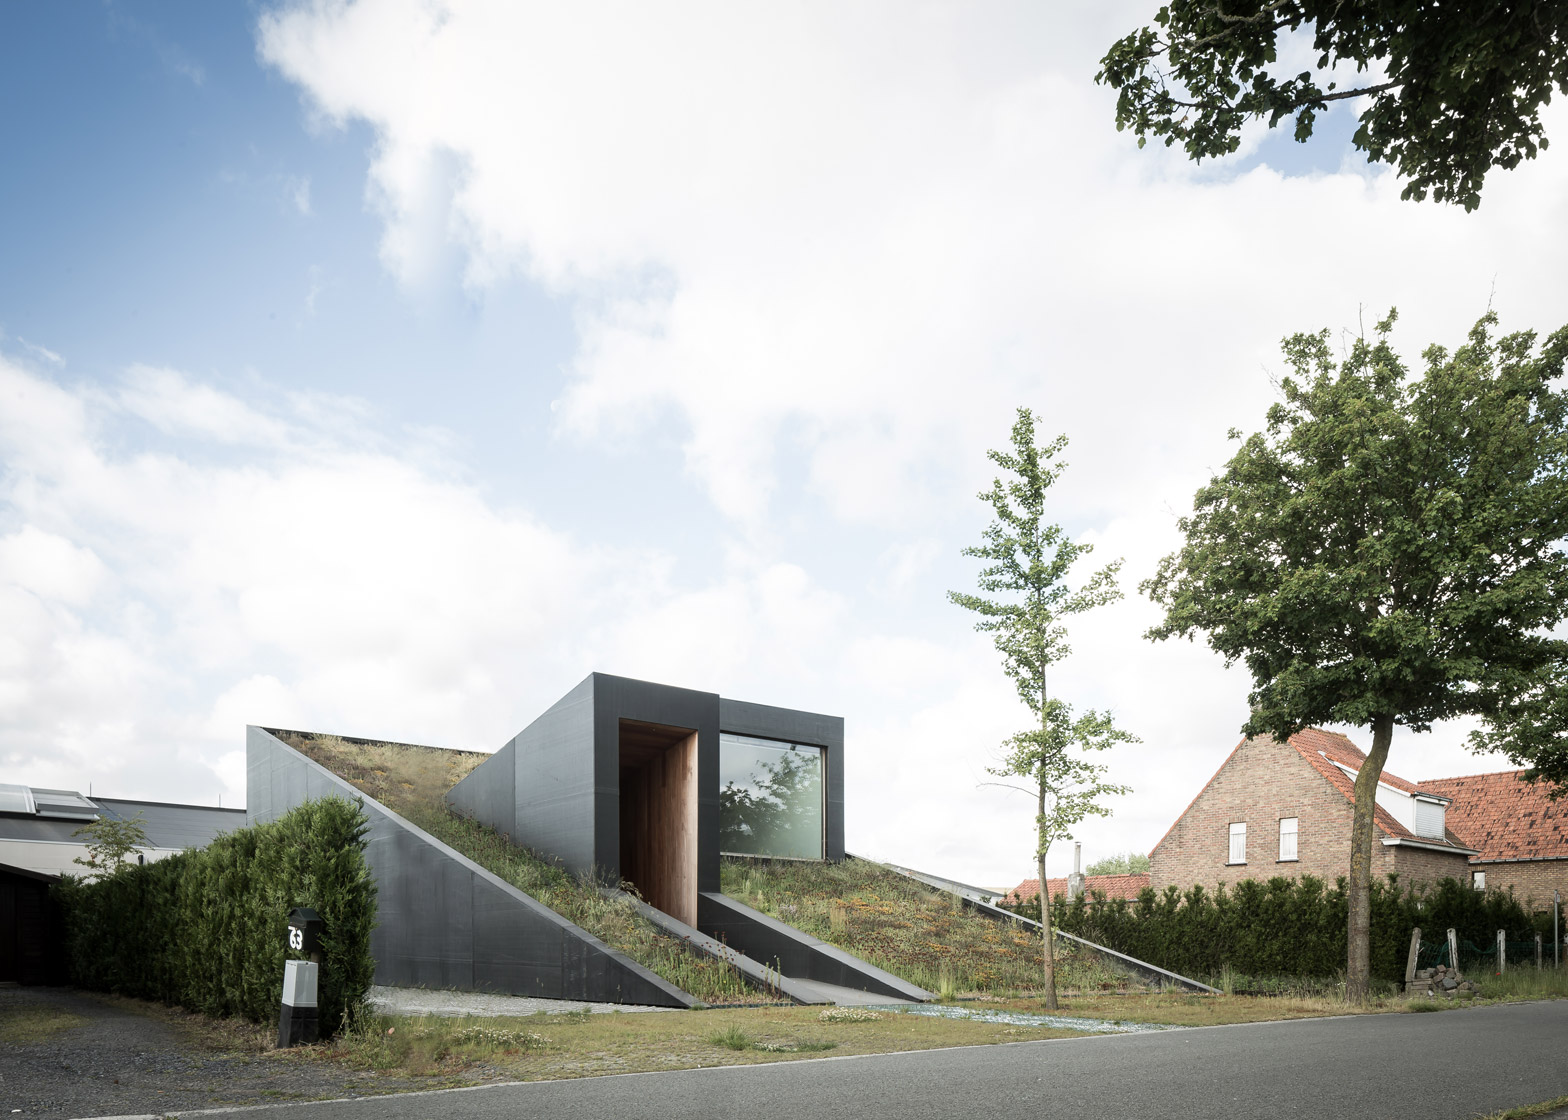 House PIBO by Oyo Architects in Maldegem, Belgium